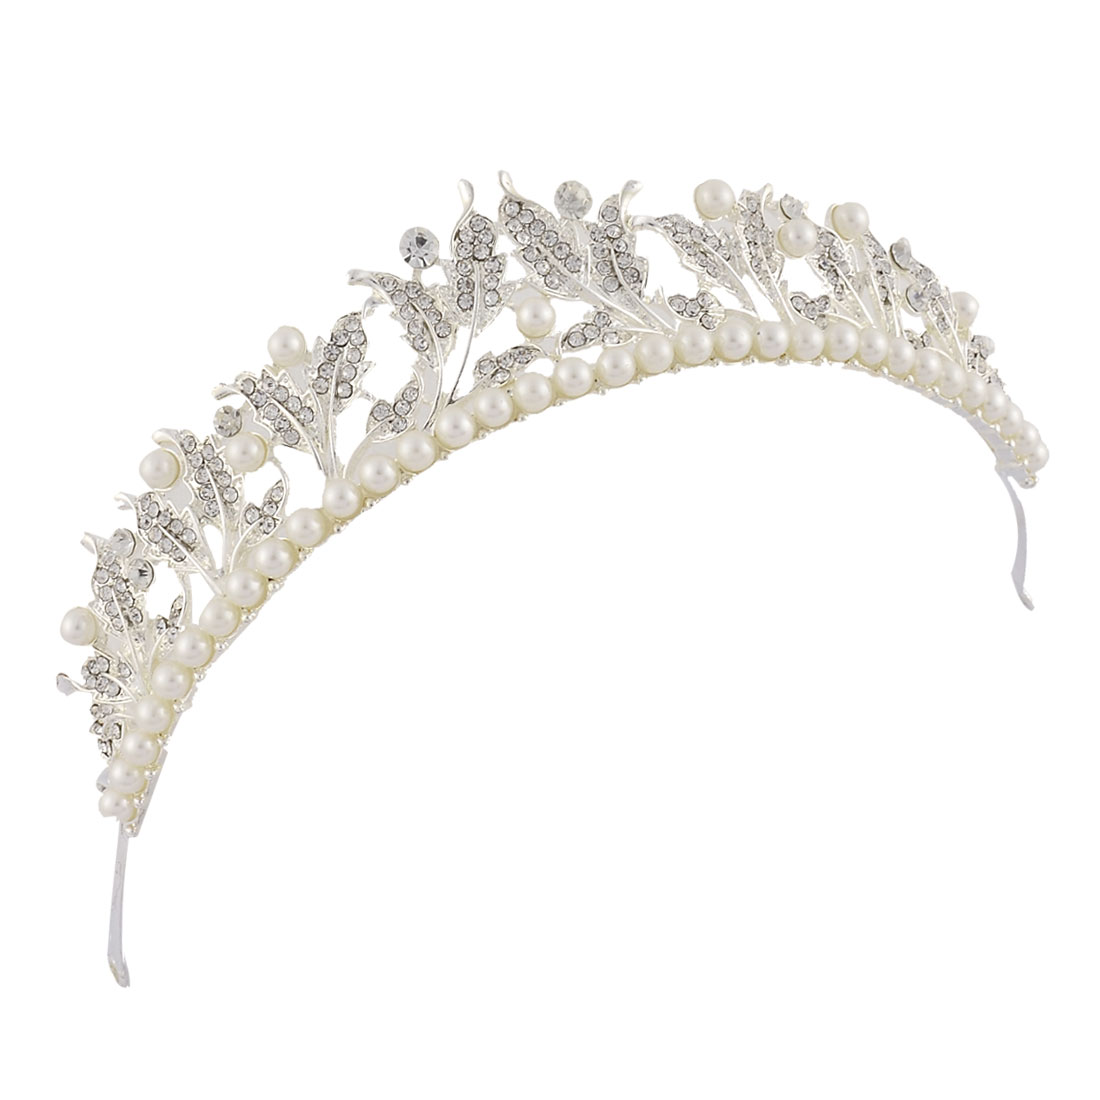 Wedding Bride Rhinestone Imitation Pearl Diadem Crown Headpiece Frontlet Silver Tone